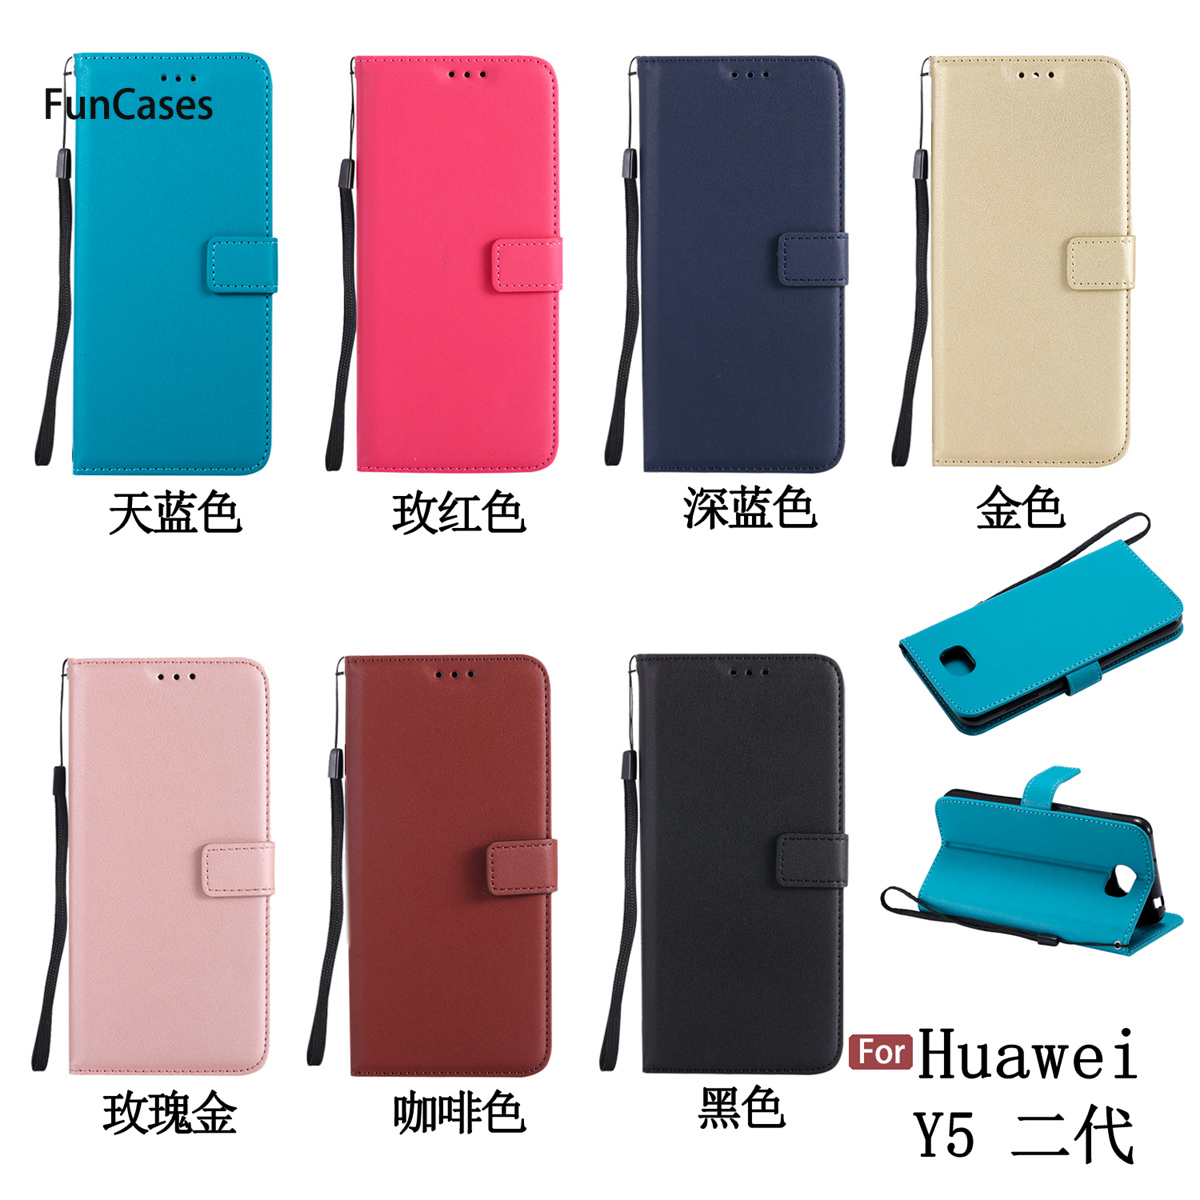 Pure Color Flip Phone Case sFor Carcasa Huawei Y5 ii Soft Silicone Phone Case Caso Cute Phone Case For Huawei Ascend Y5 2 Telpon